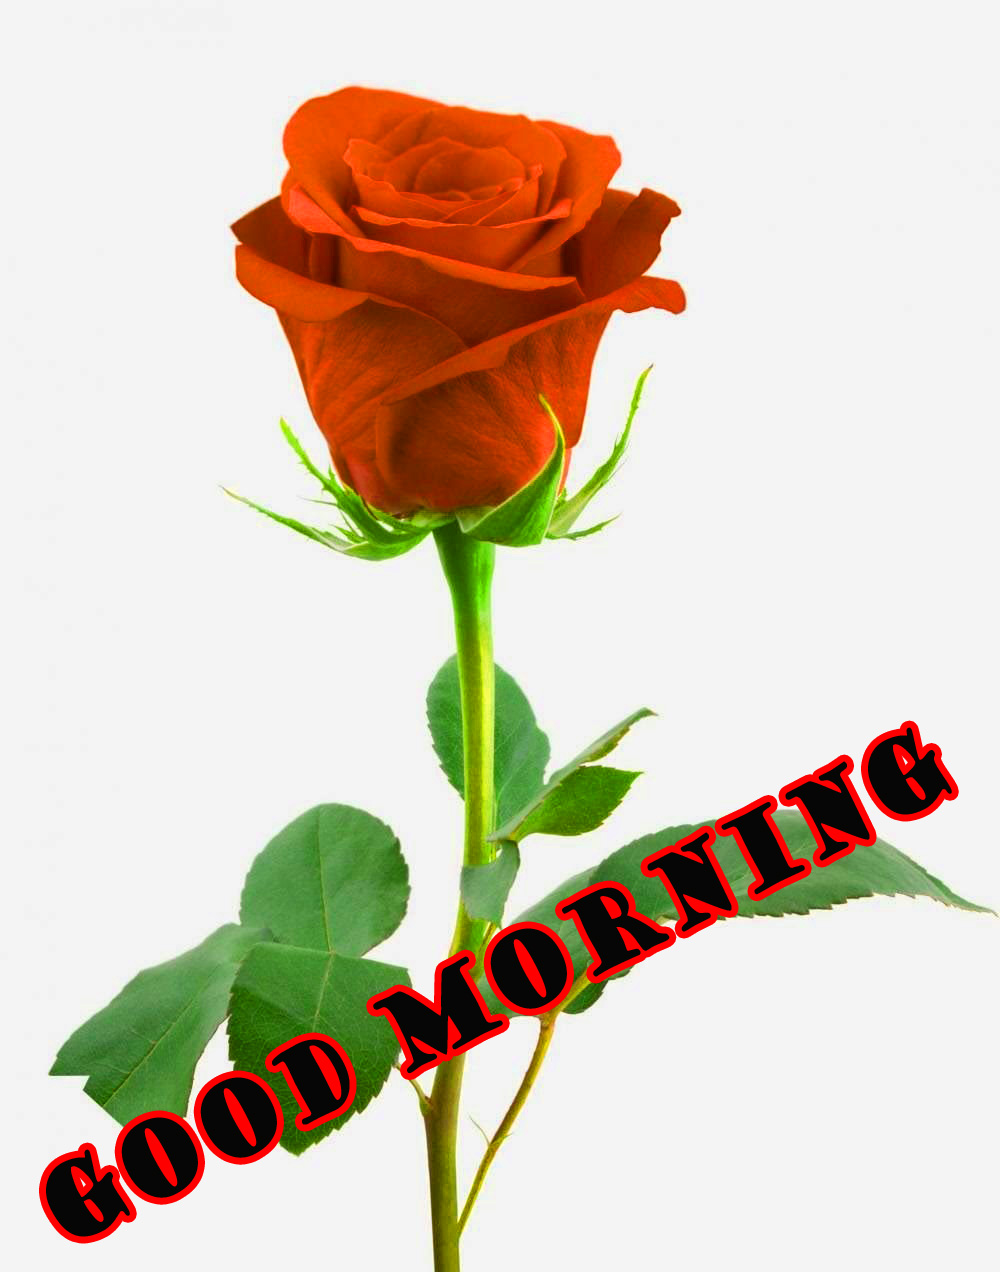 Good Morning Red Rose Wallpaper Pictures For Best Friend